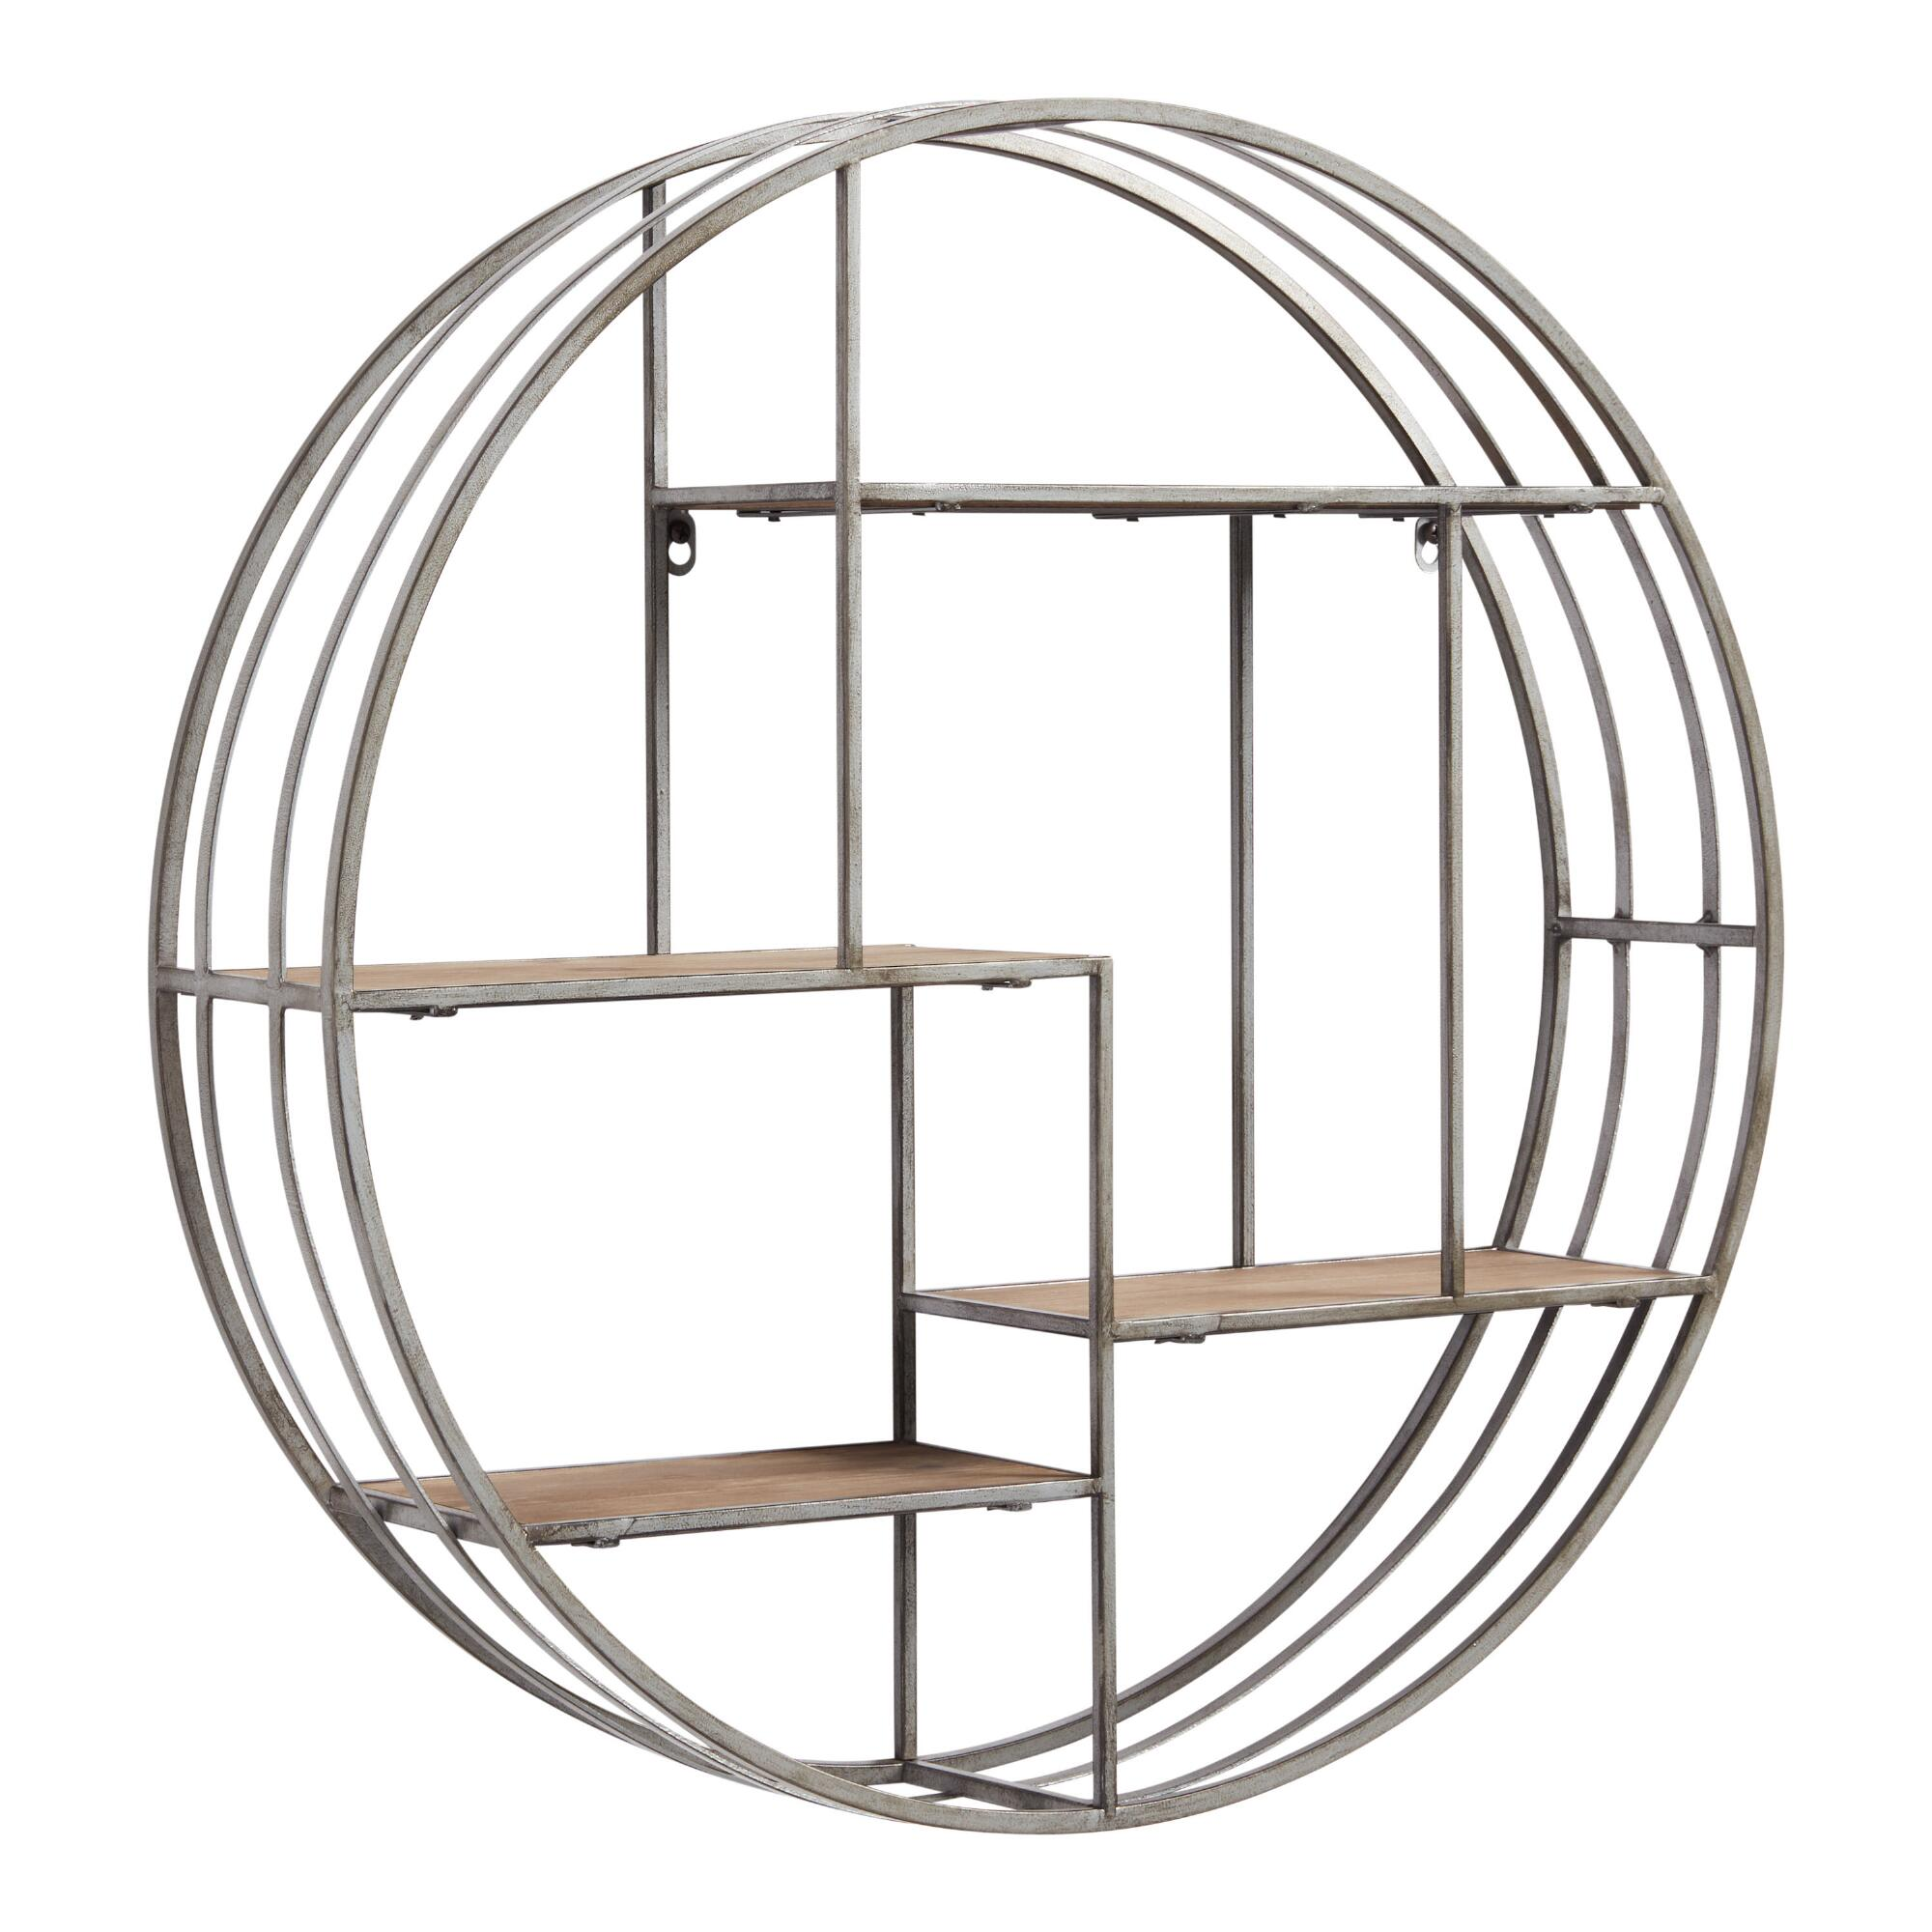 Round Wood And Metal Mateo Wall Storage World Market